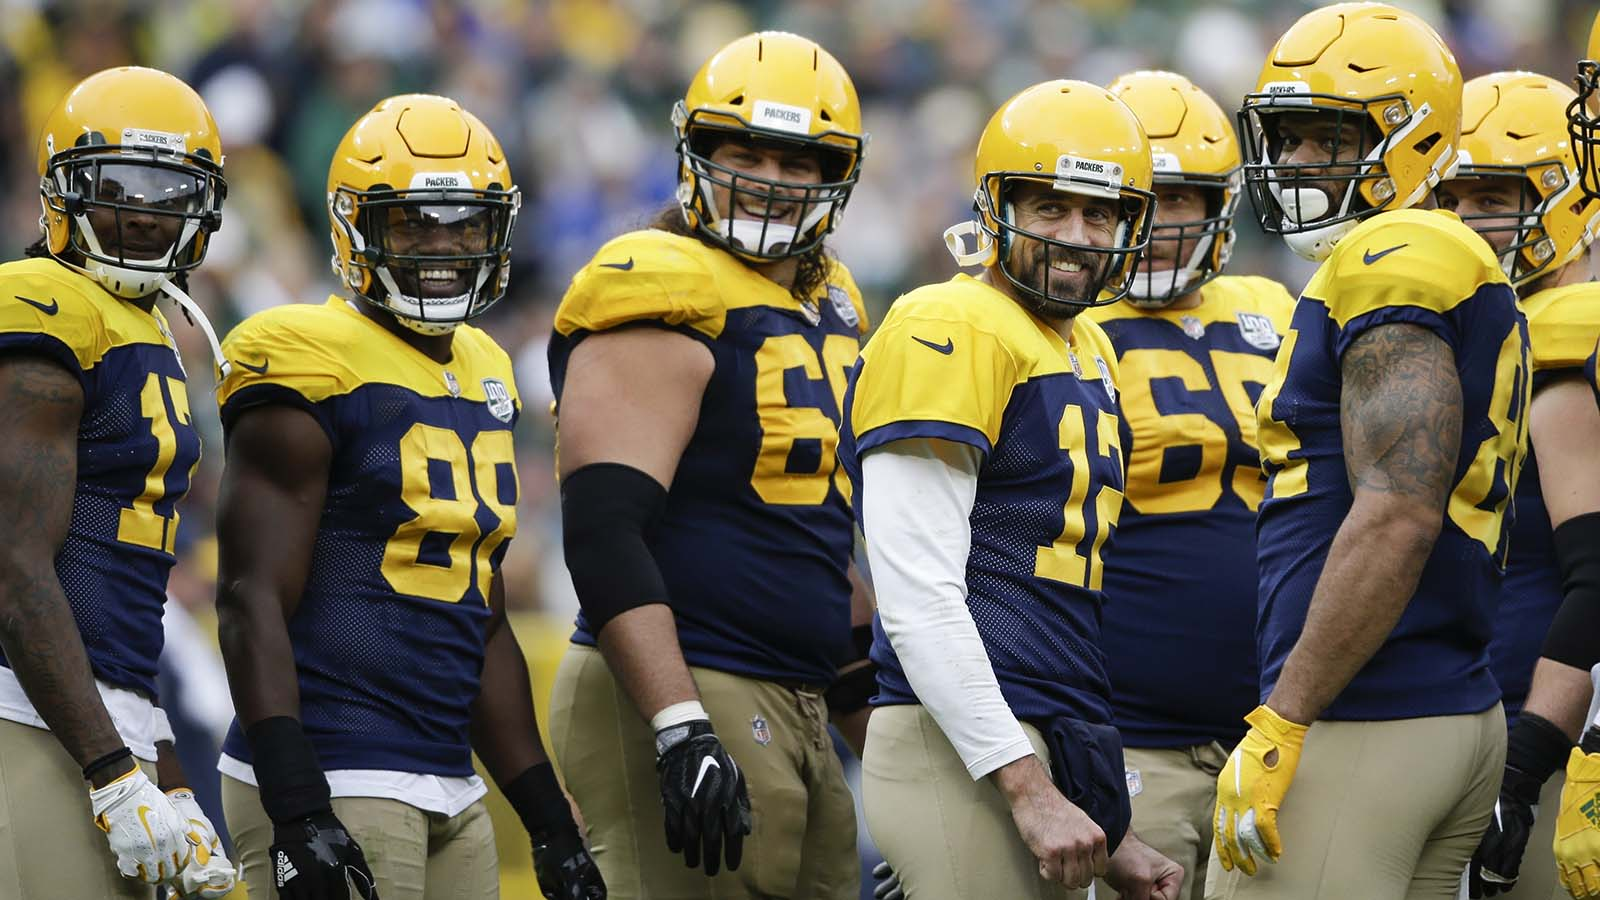 Green Bay Packers' Aaron Rodgers and teammates smile at fans during a break in the second half of an NFL football game Sunday, Sept. 30, 2018, in Green Bay, Wis. The Packers won 22-0. (AP Photo/Jeffrey Phelps)